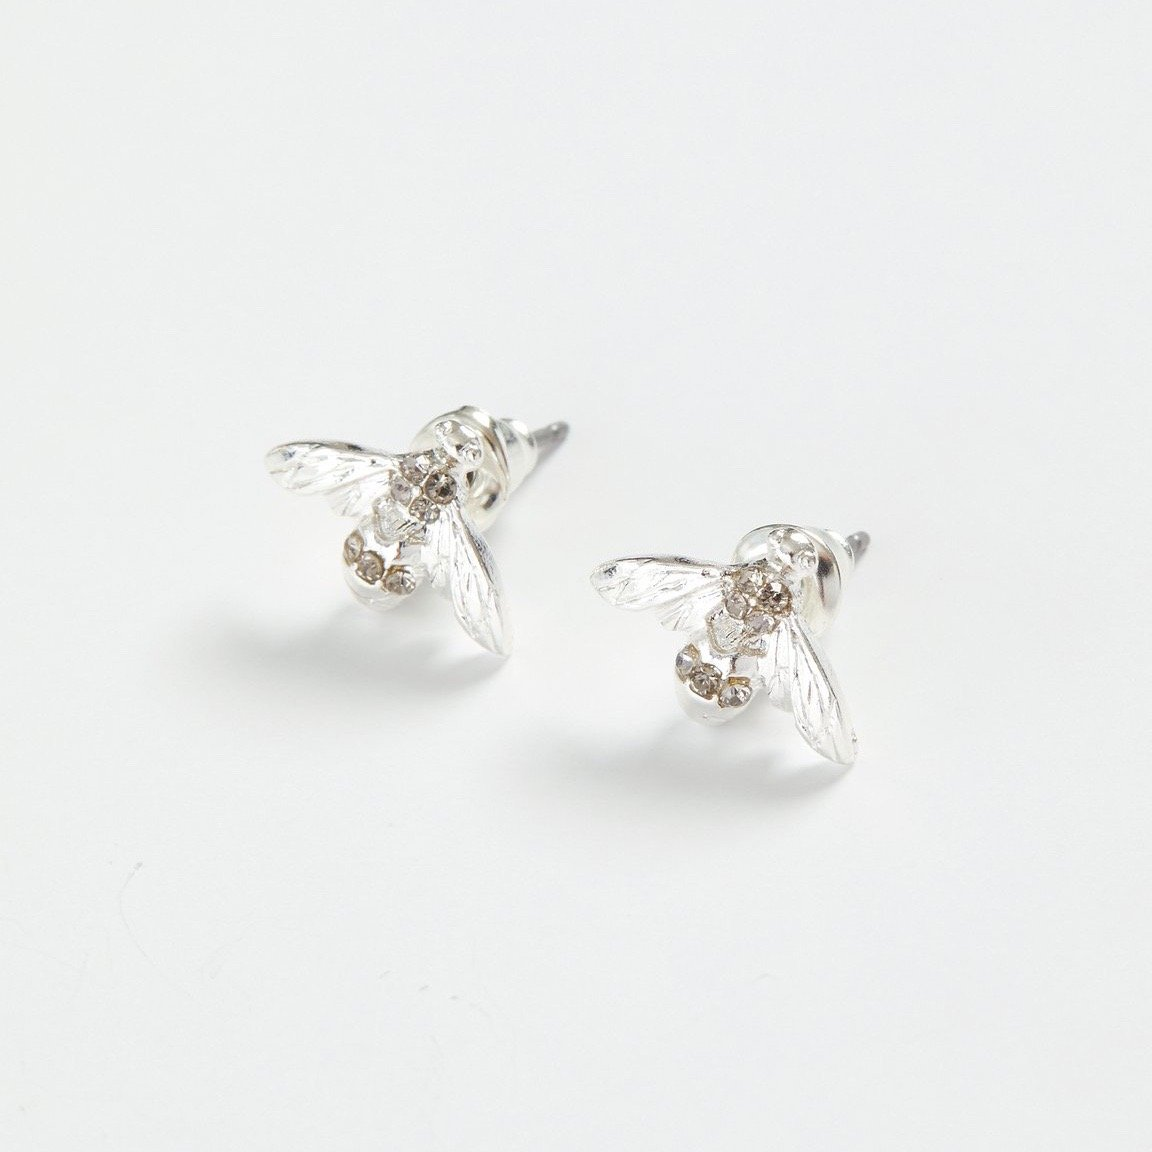 Fable Silver Pave Bee Stud Earrings | Putti fine Fashions